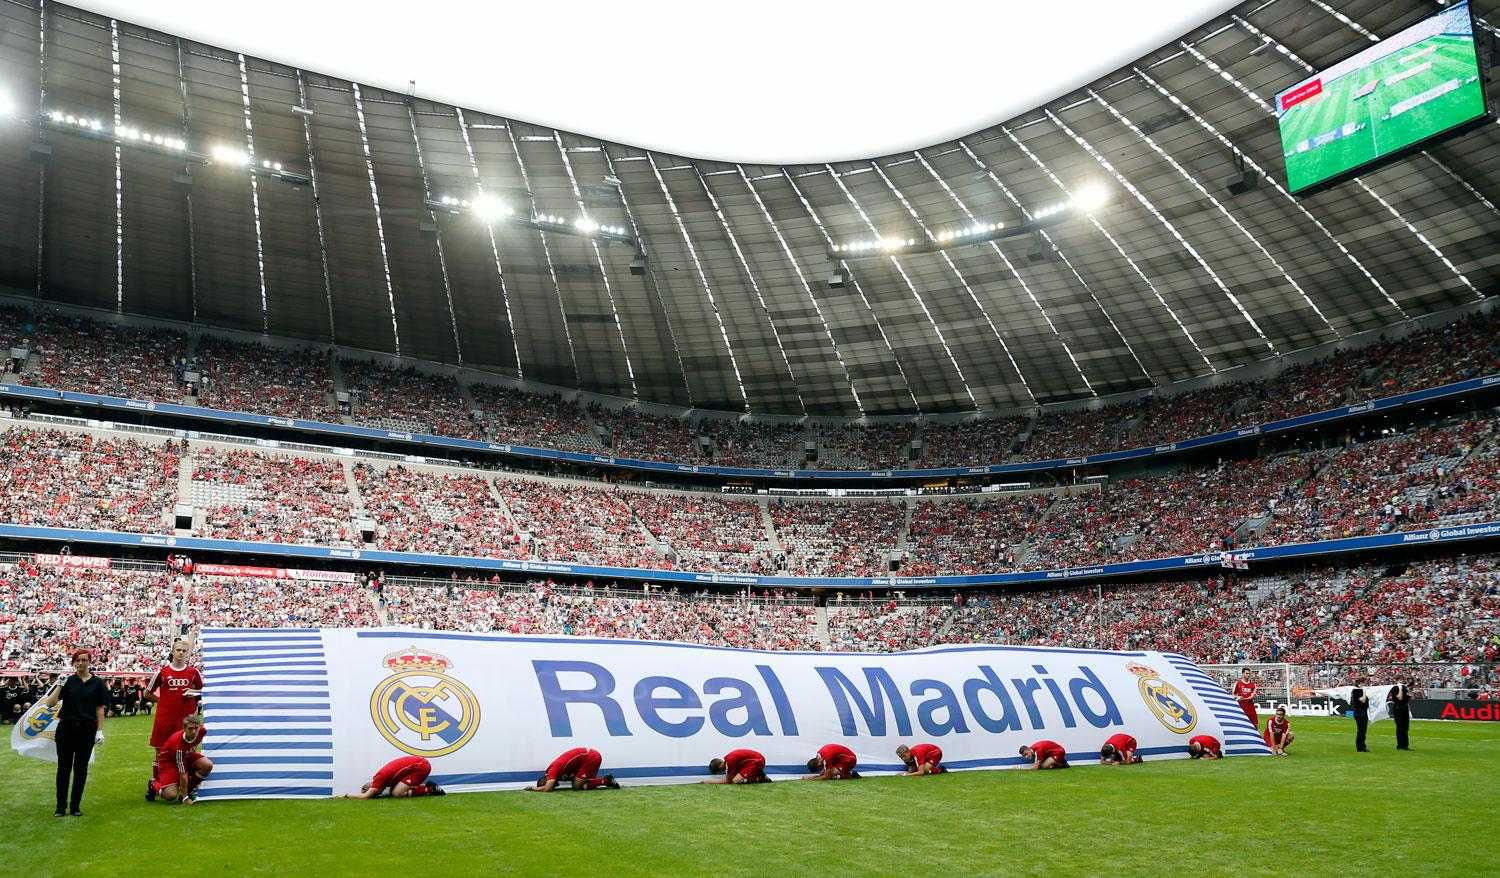 Real Madrid - Real Madrid - Tottenham - 04-08-2015